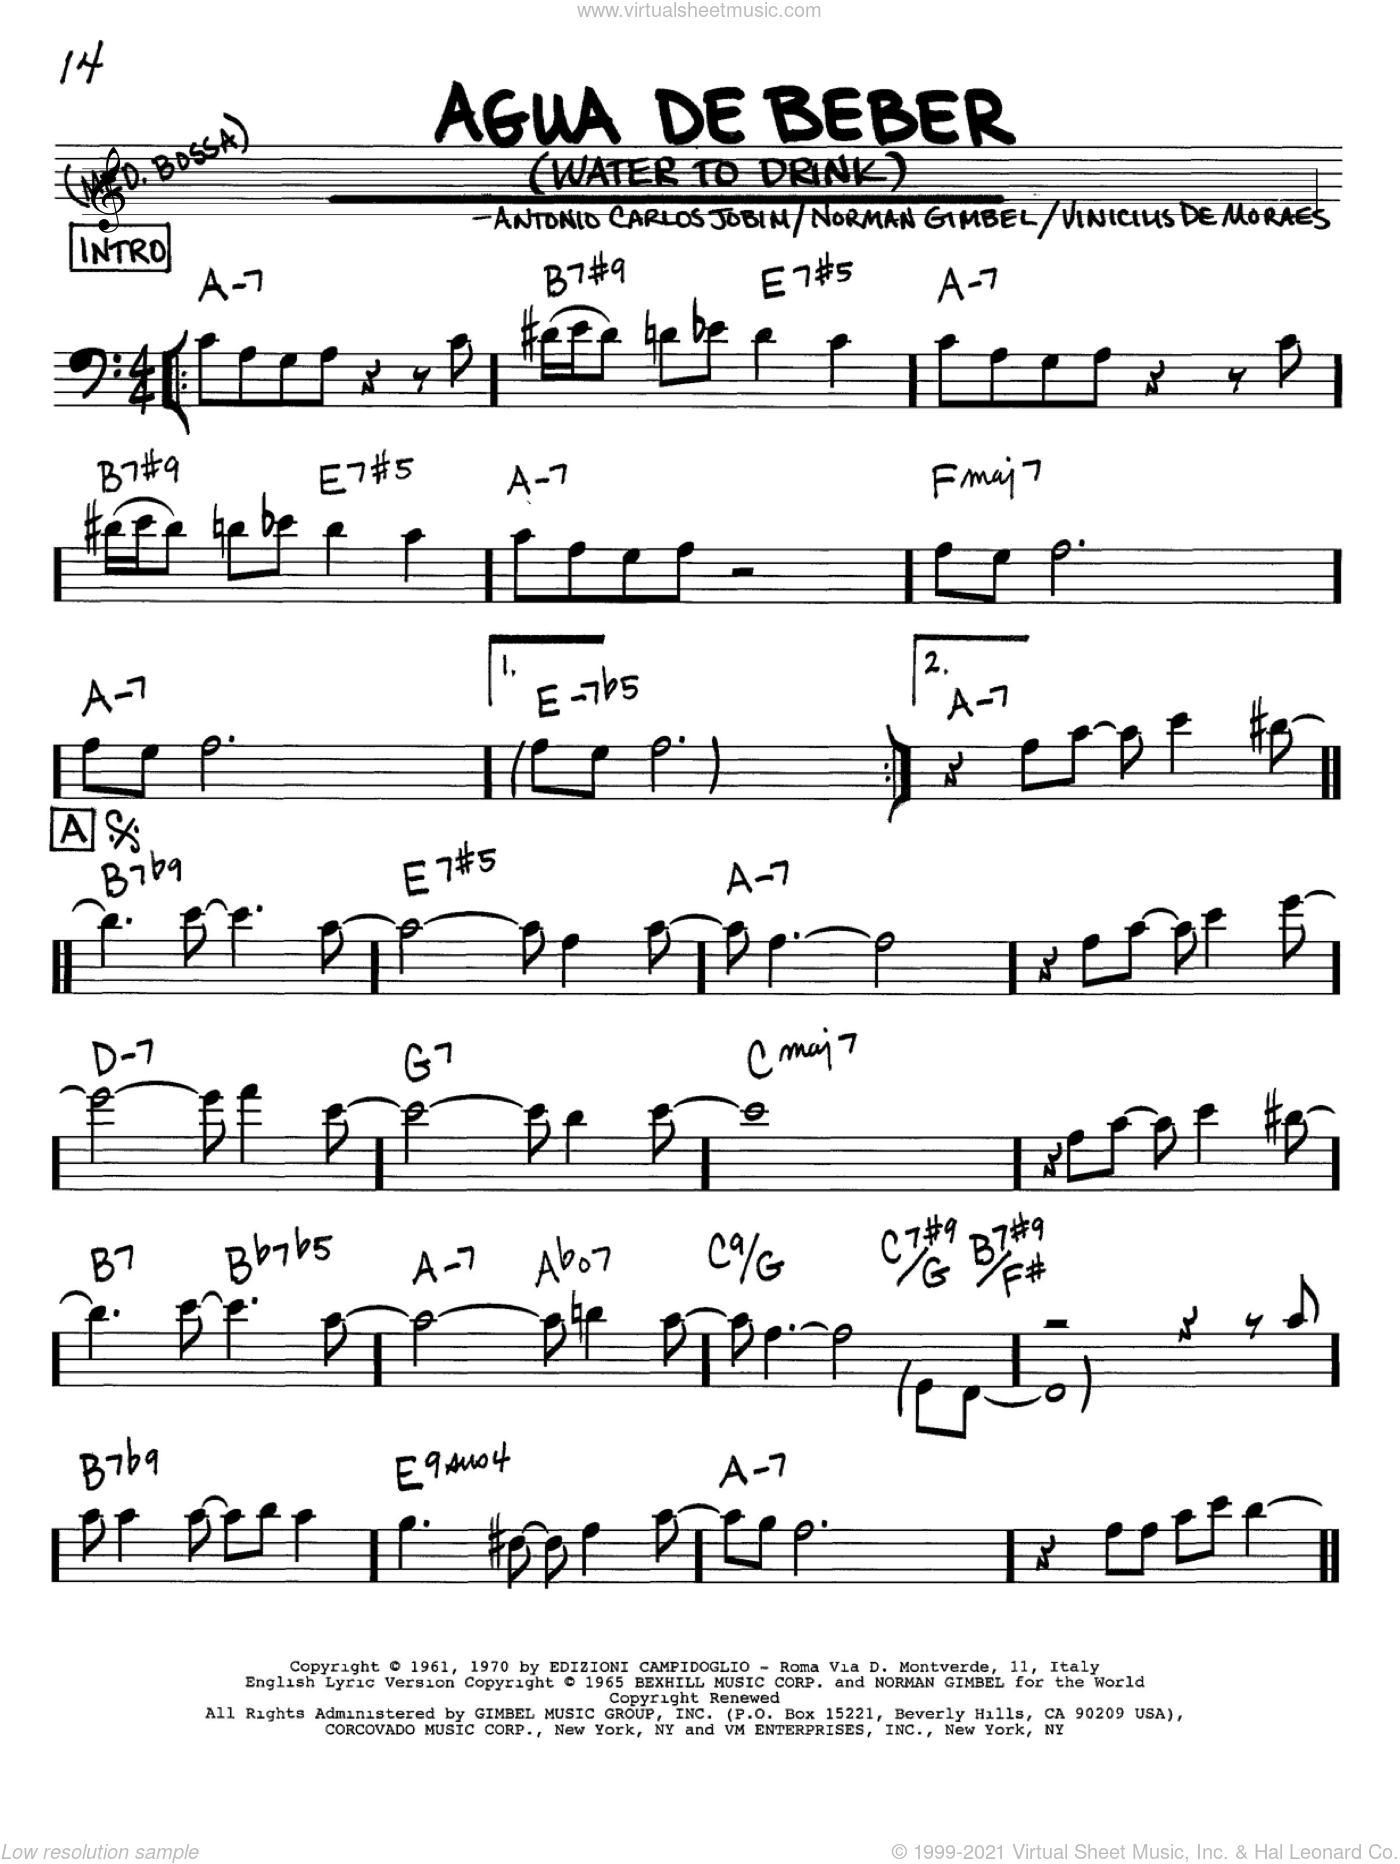 Agua De Beber (Water To Drink) sheet music for voice and other instruments (bass clef) by Antonio Carlos Jobim, Norman Gimbel and Vinicius de Moraes, intermediate skill level